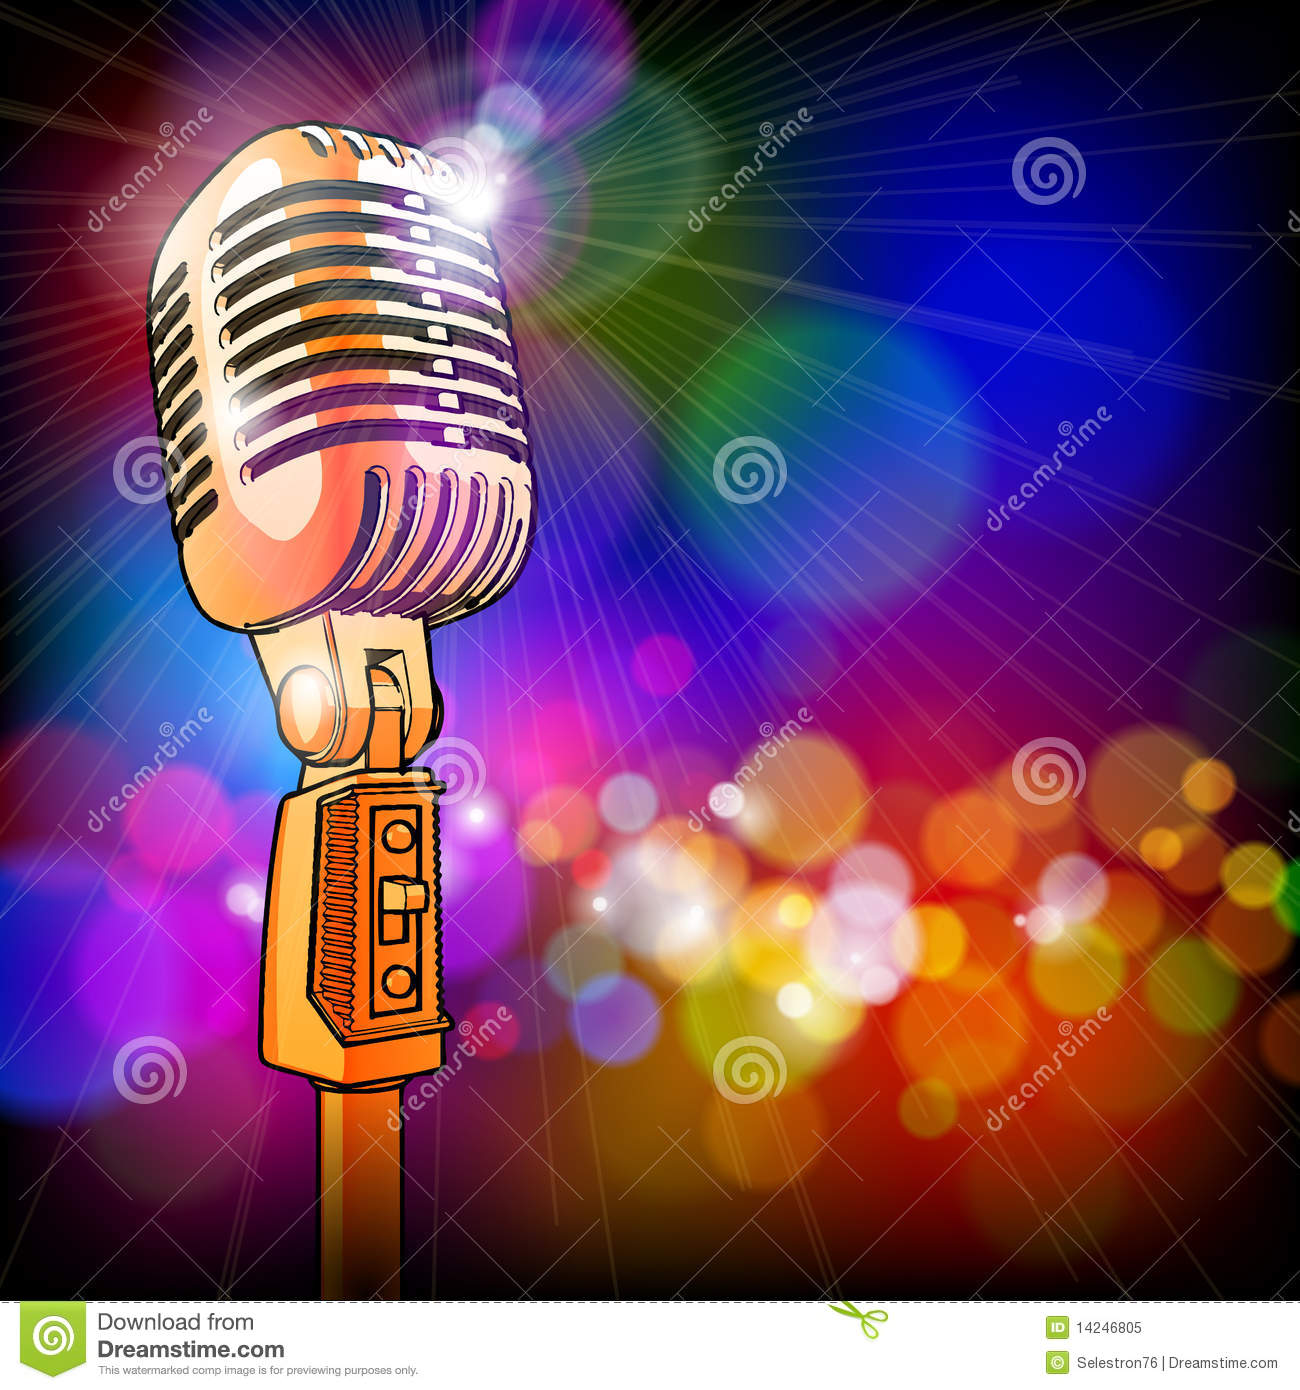 Royalty Free Stock Photo Gold Microphone Color Lights Image14246805 additionally Product in addition Item 22737 Kenwood KVT 516 also 338886 likewise Microphone On Stage Wallpaper 2. on old radio microphones